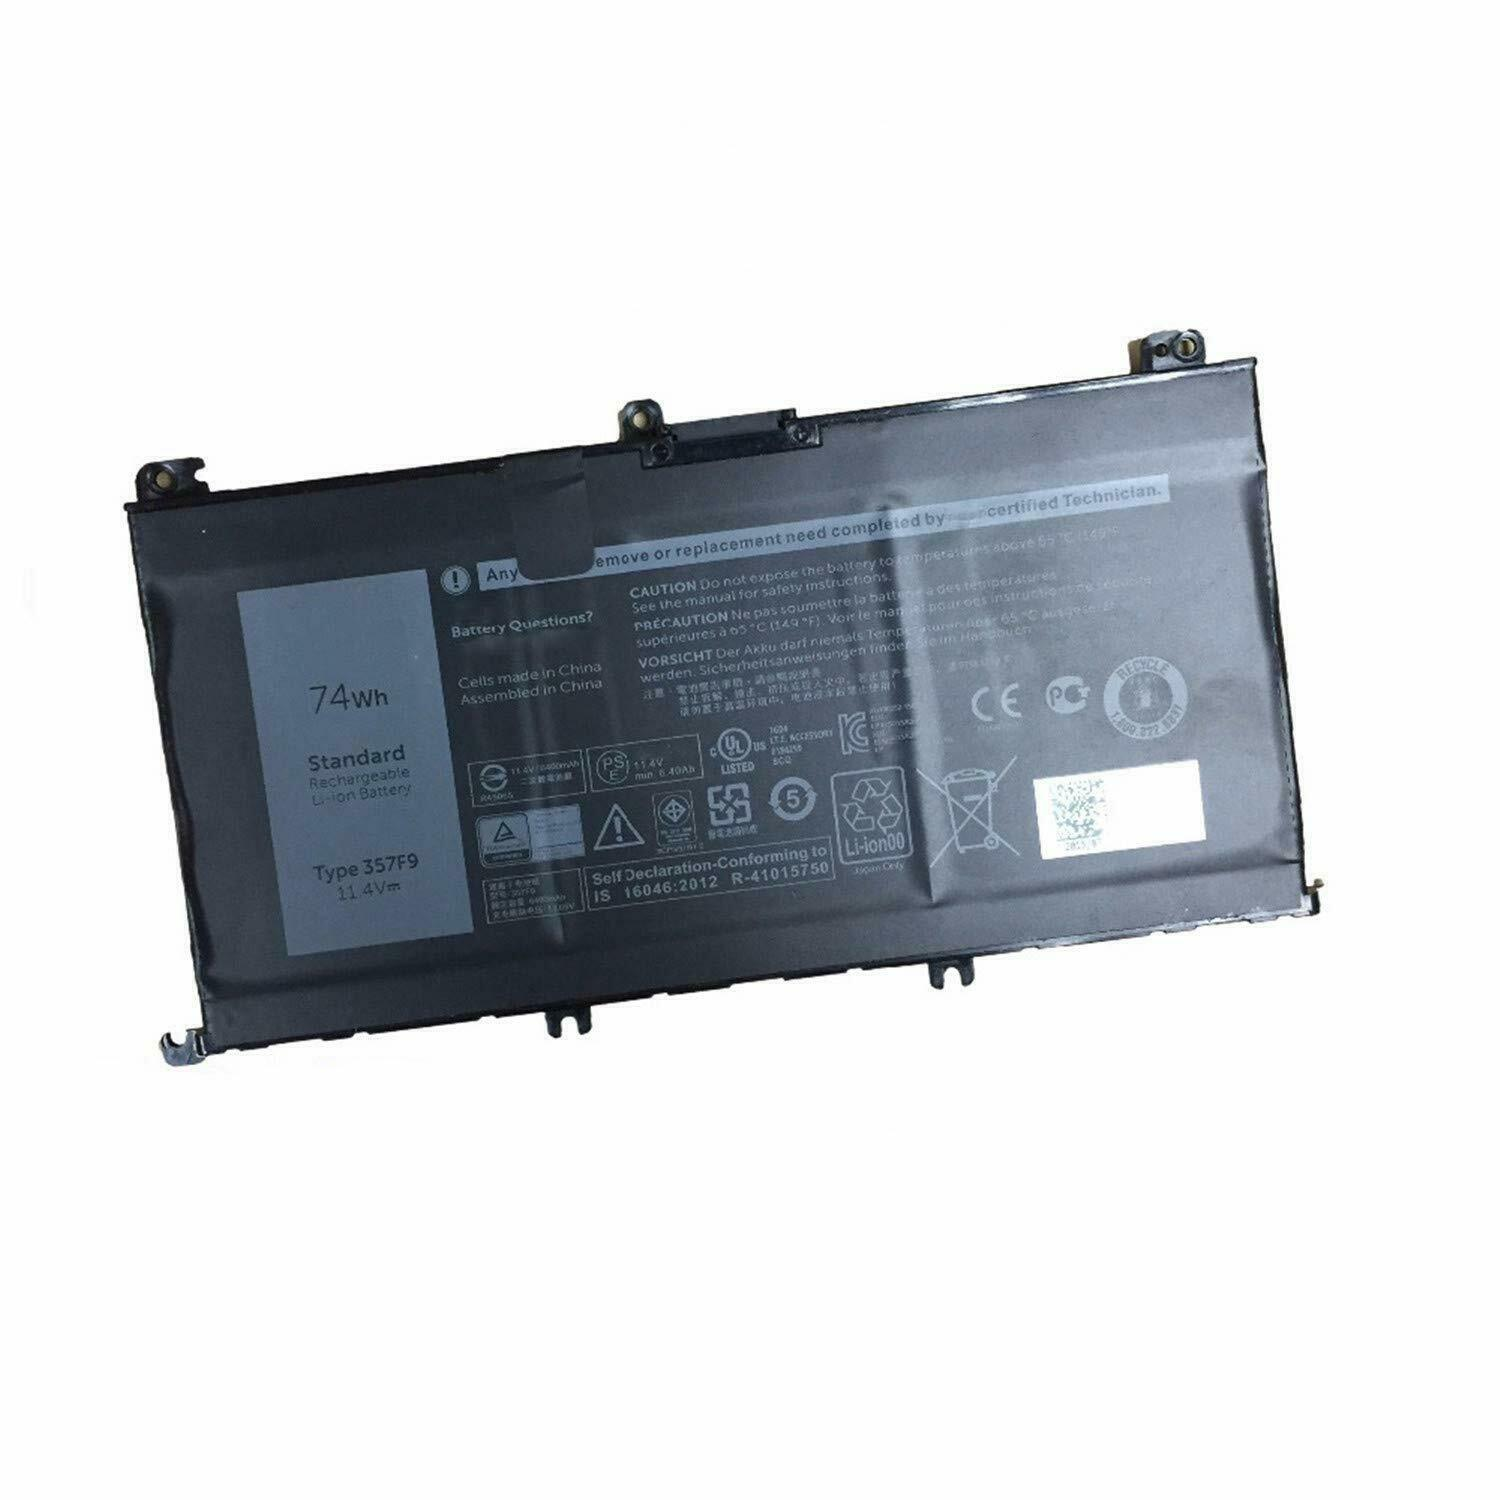 357F9 71JF4 Dell Inspiron 15 7559 15 7000 7566 7567 P65F compatible battery